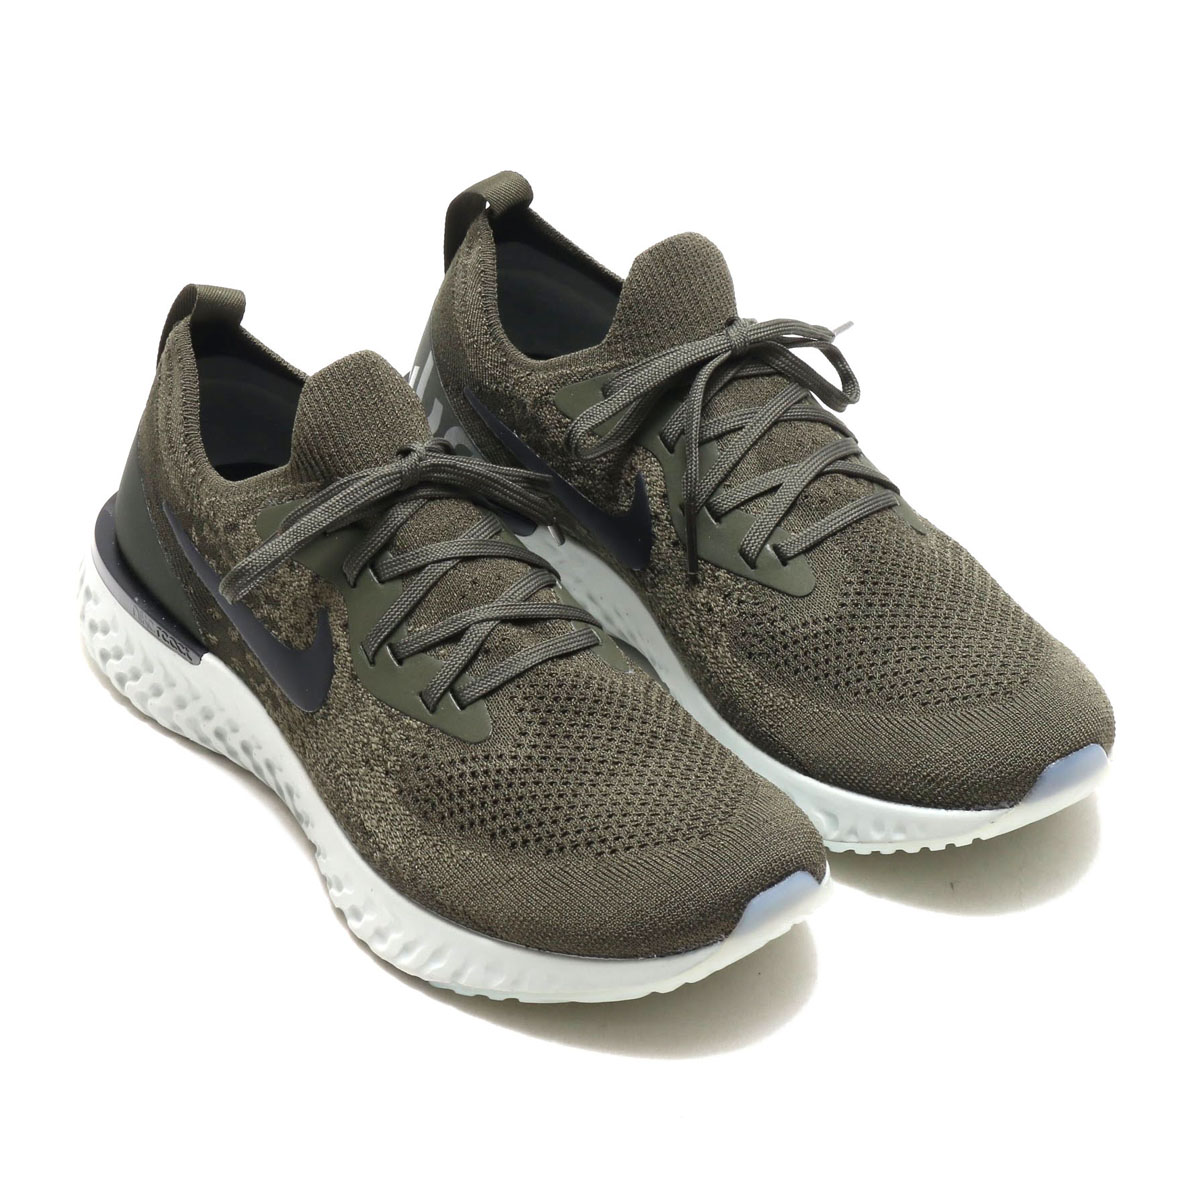 d7b73caedbac NIKE EPIC REACT FLYKNIT(ナイキ エピック リアクト リアクト リアクト フライニット)(CARGO KHAKI BLACK- SEQUOIA-LIGHT SILVER)18SU-S 6ef